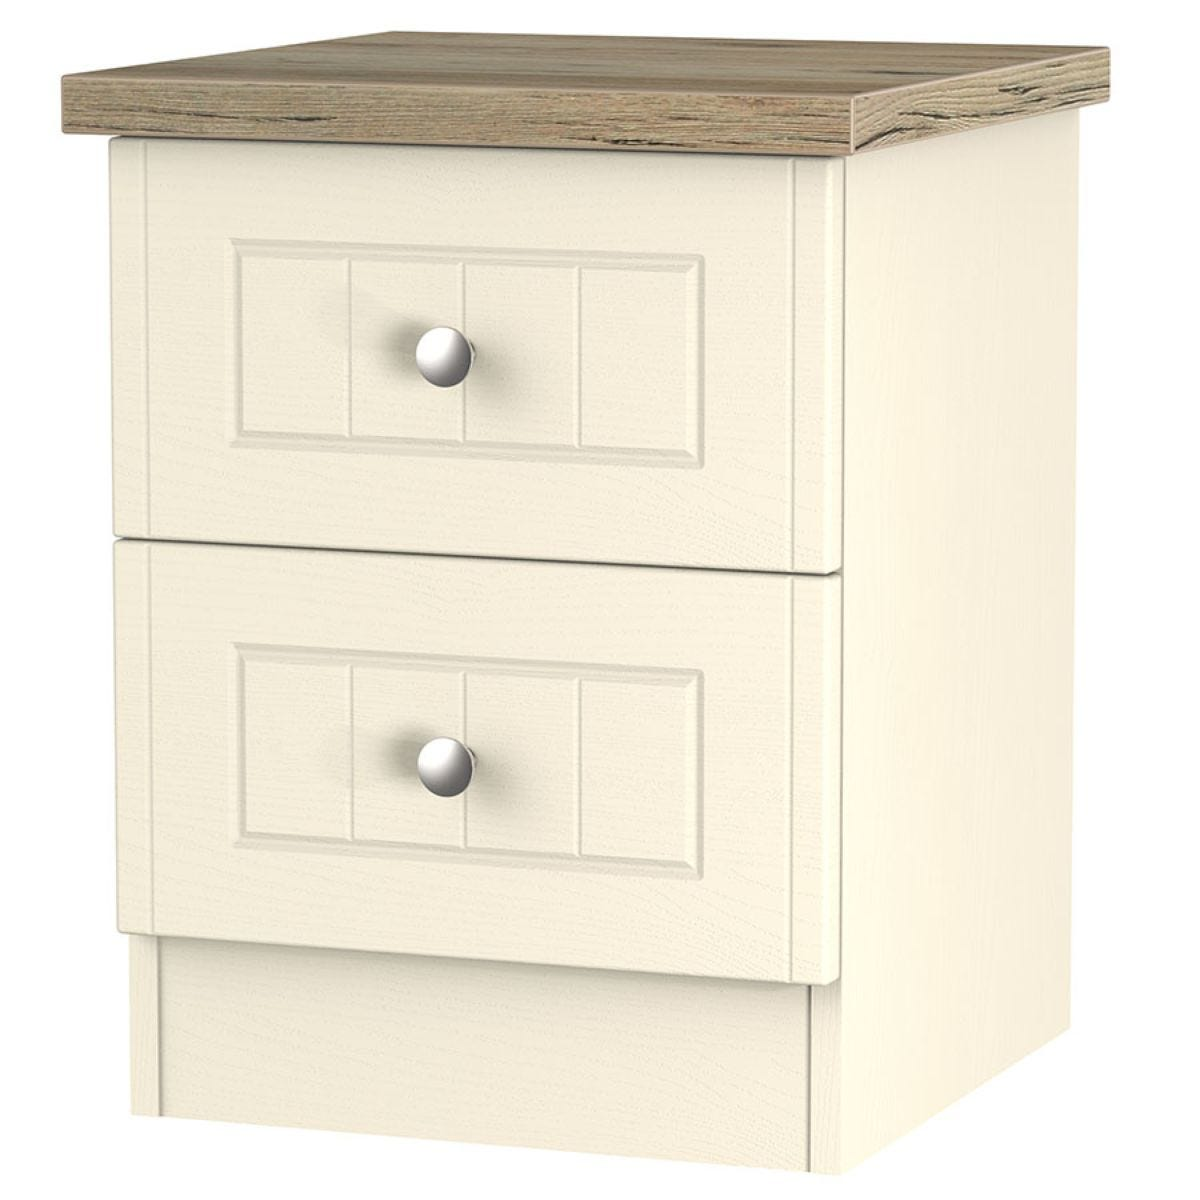 Wilcox 2-Drawer Bedside Table - Cream Ash